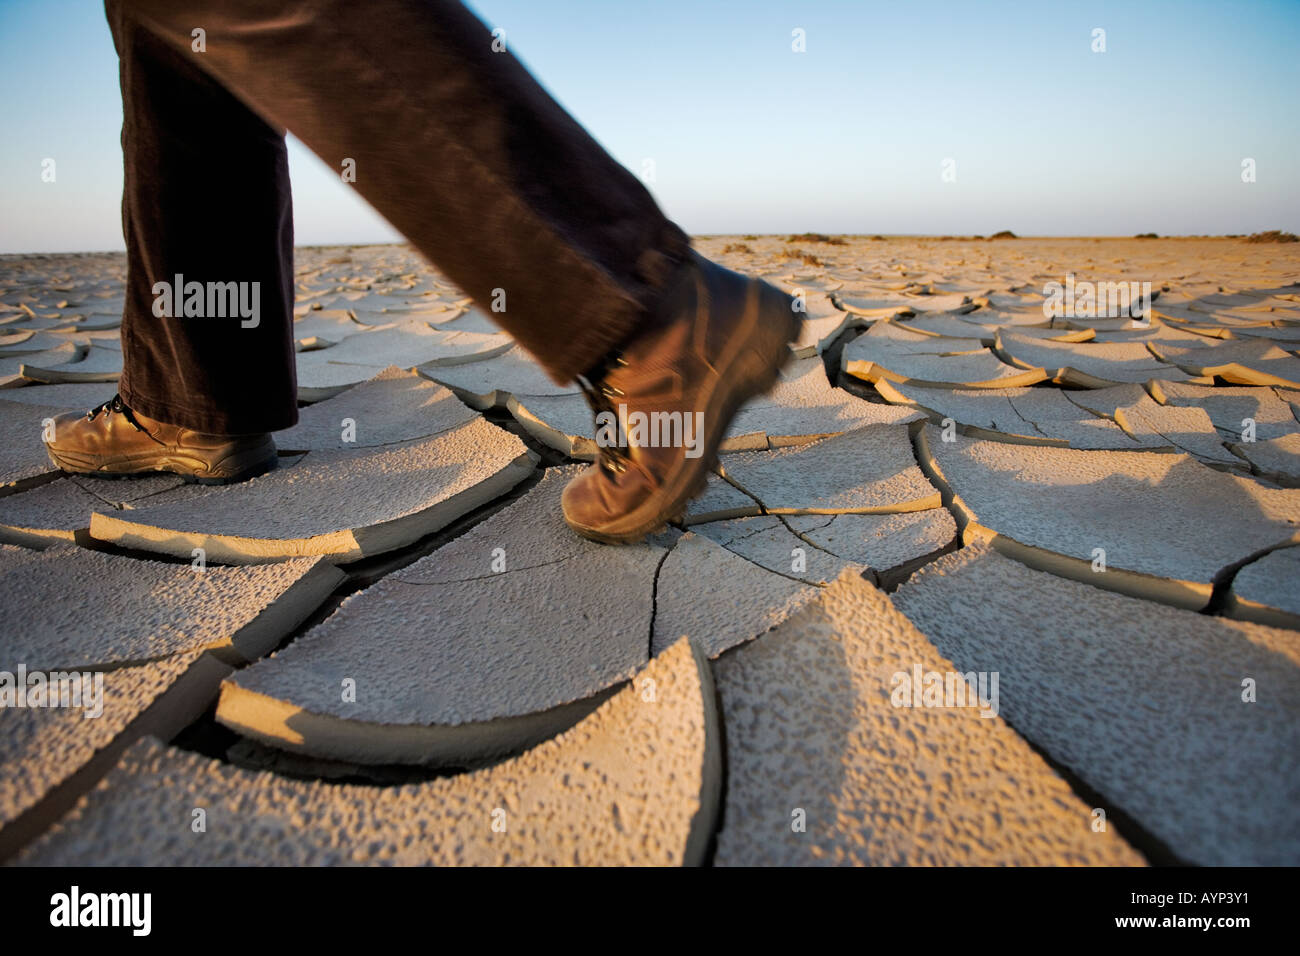 Person with hiking boots walking over cracked dry mud in the Namib desert - Stock Image